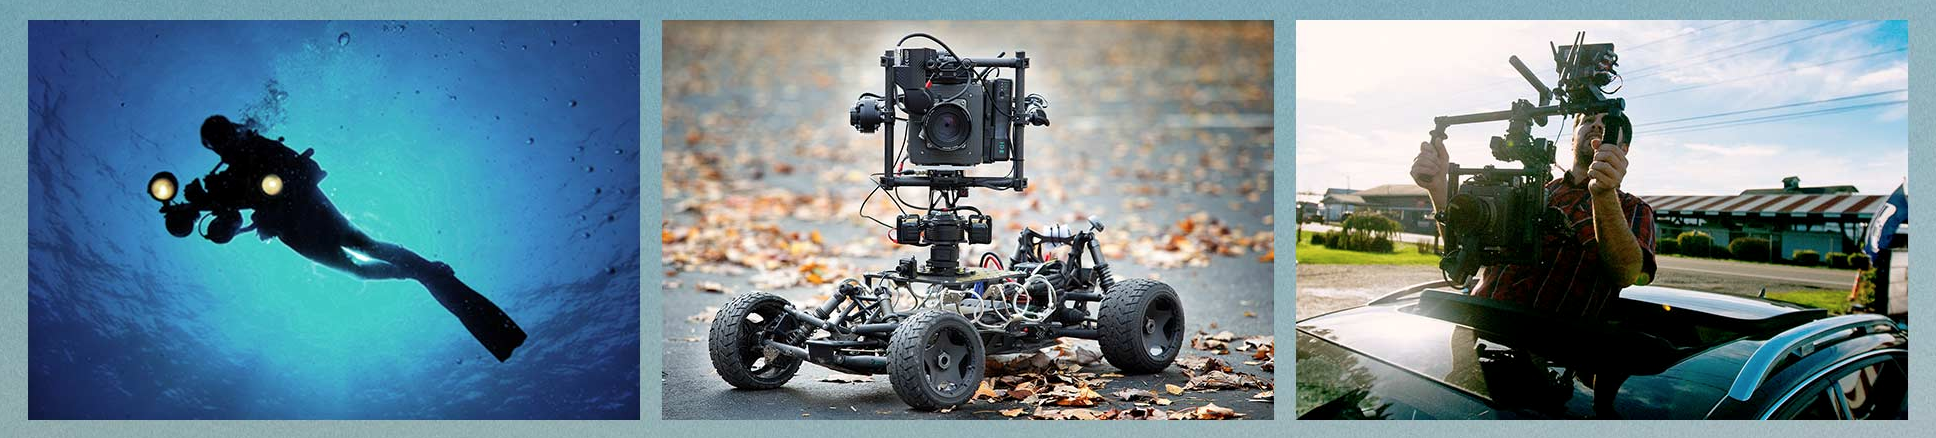 Alexa mini In-Action